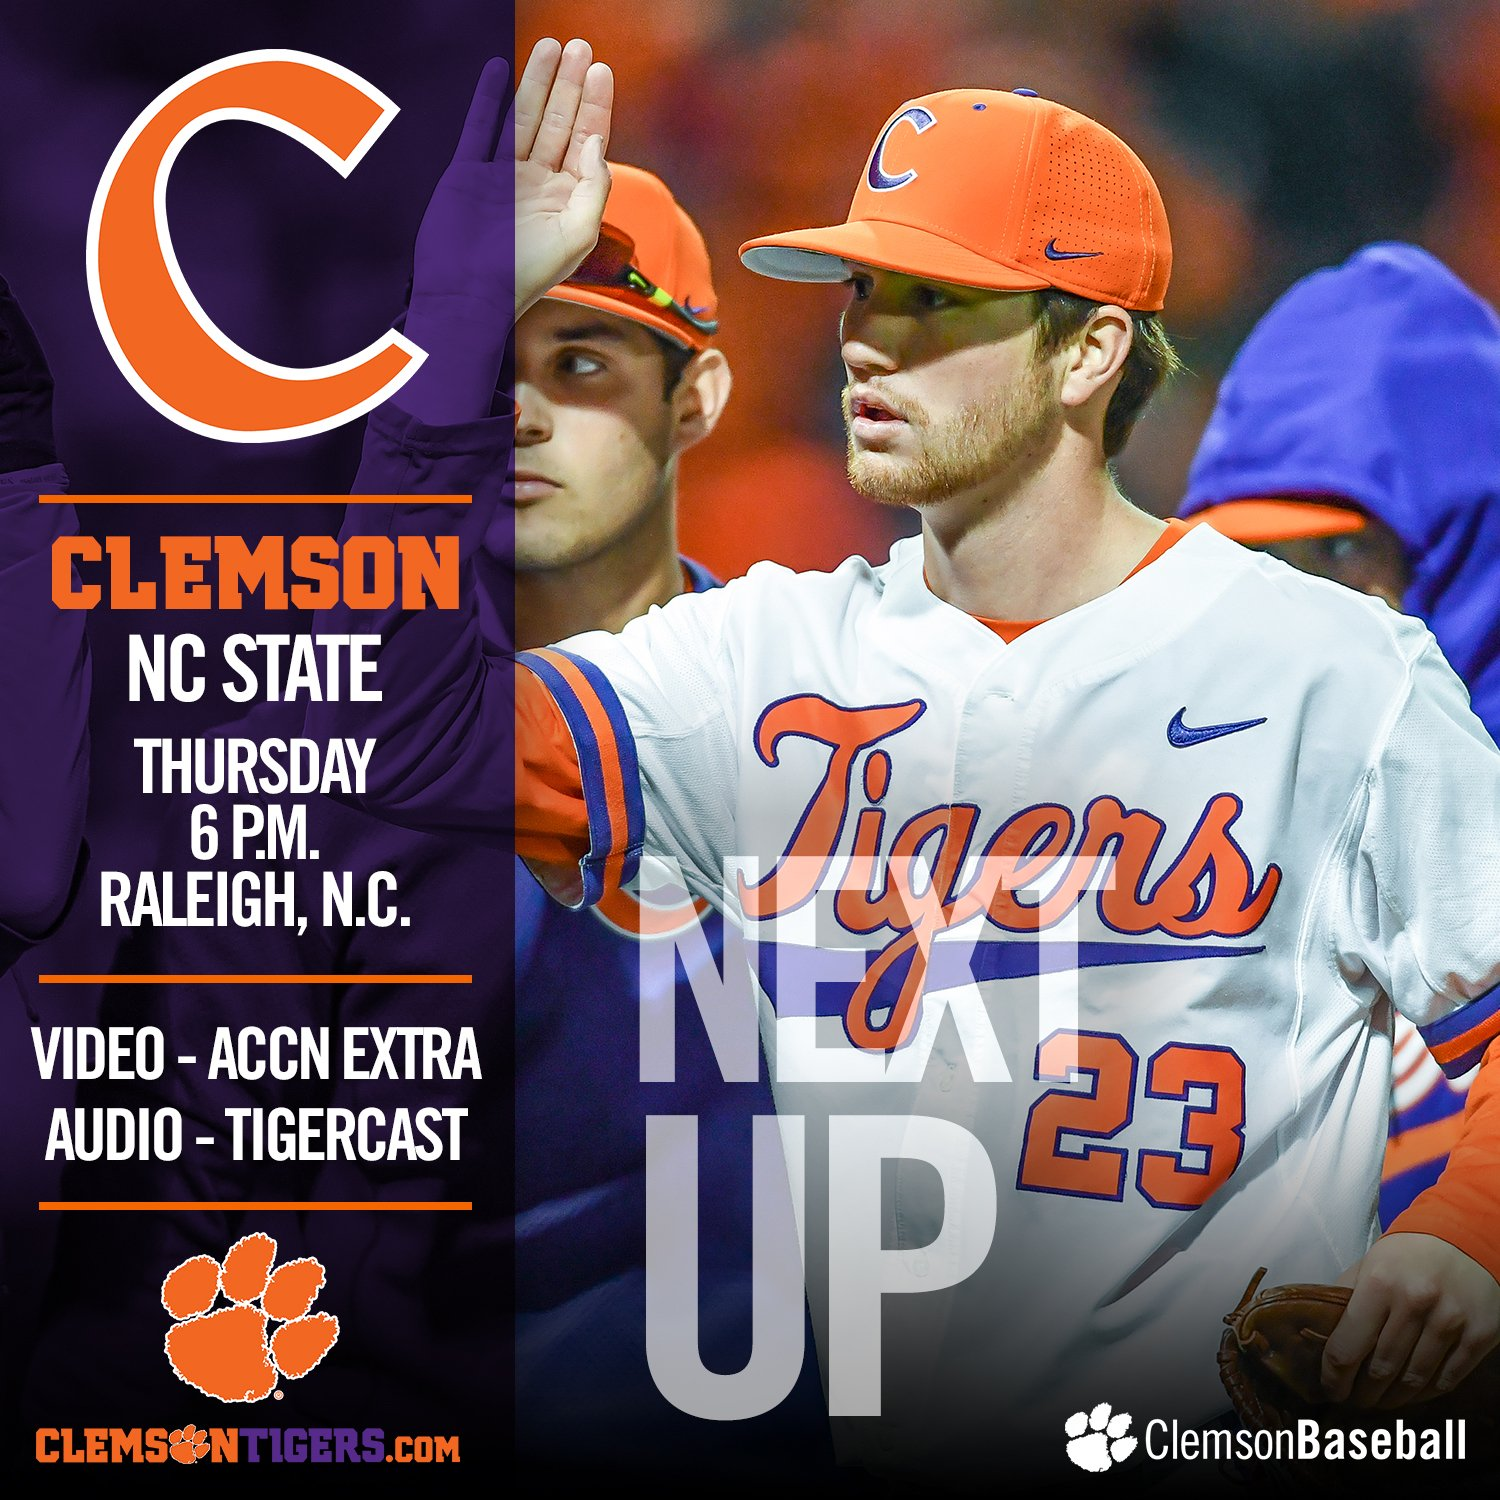 #Clemson plays on a Thursday for the first time in 2017 when it faces NC State.  GAMEDAY - https://t.co/8R69BpgB7Y https://t.co/BoKhl5s3h1